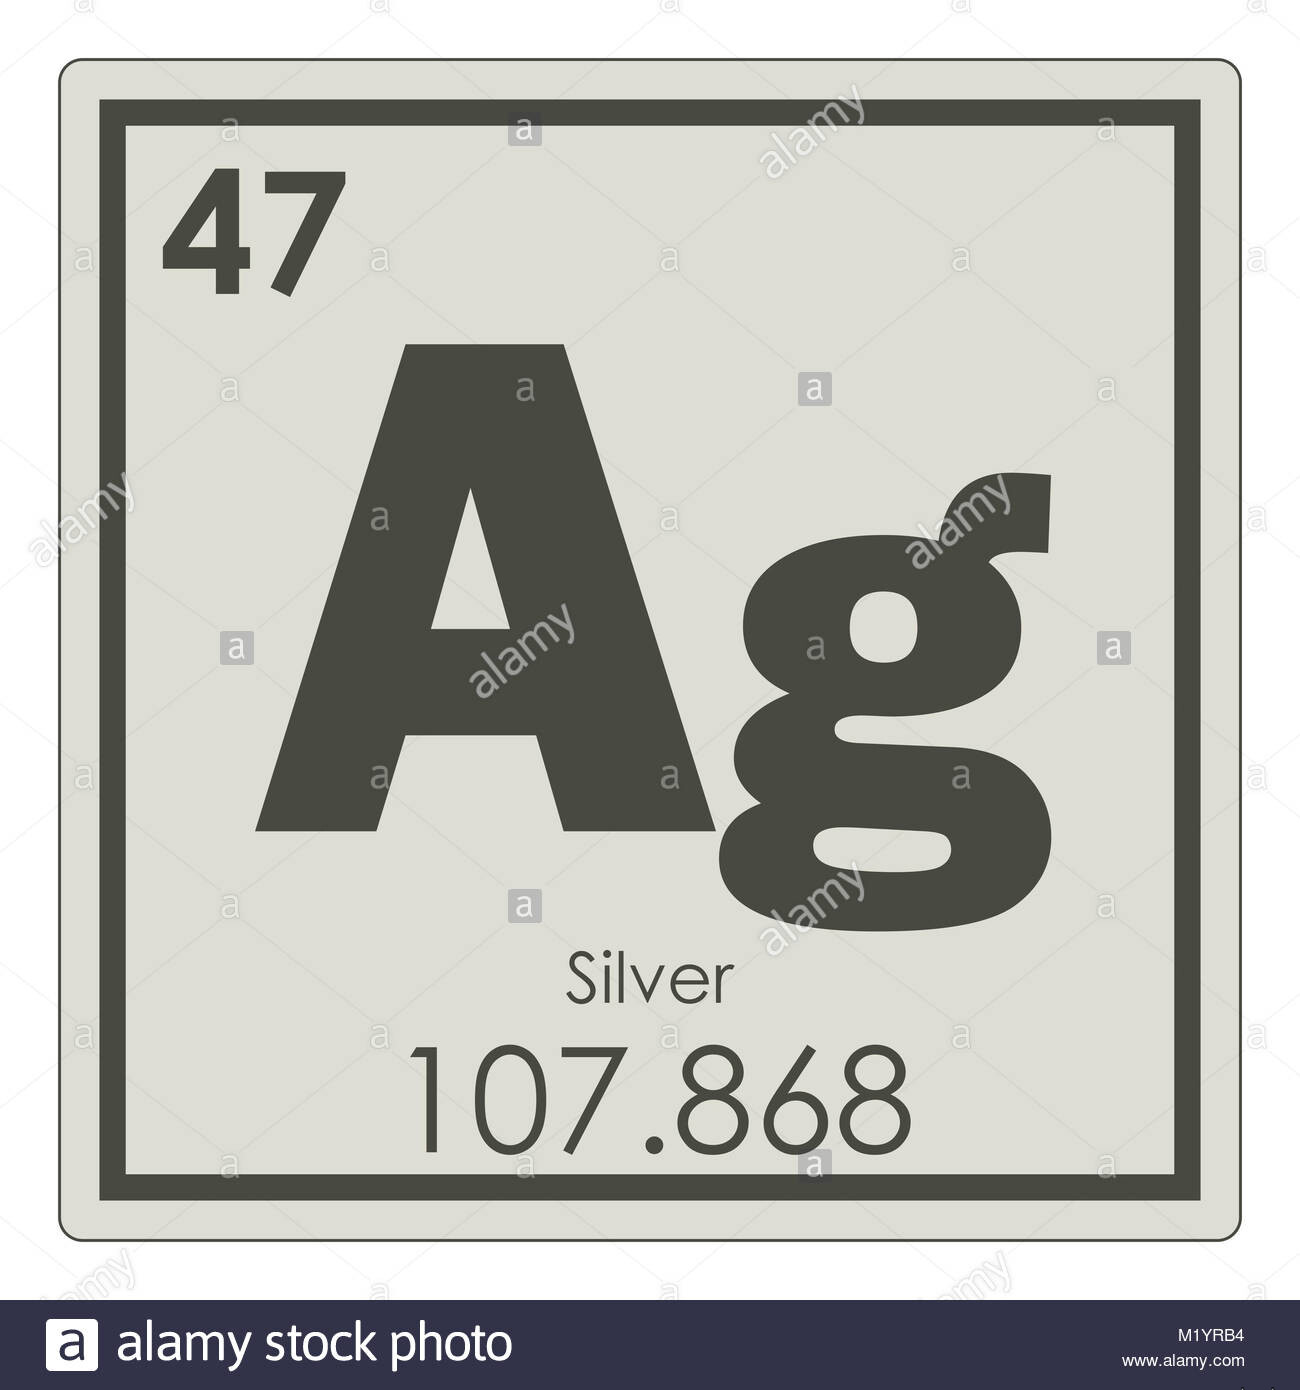 what is the chemical symbol for silver?